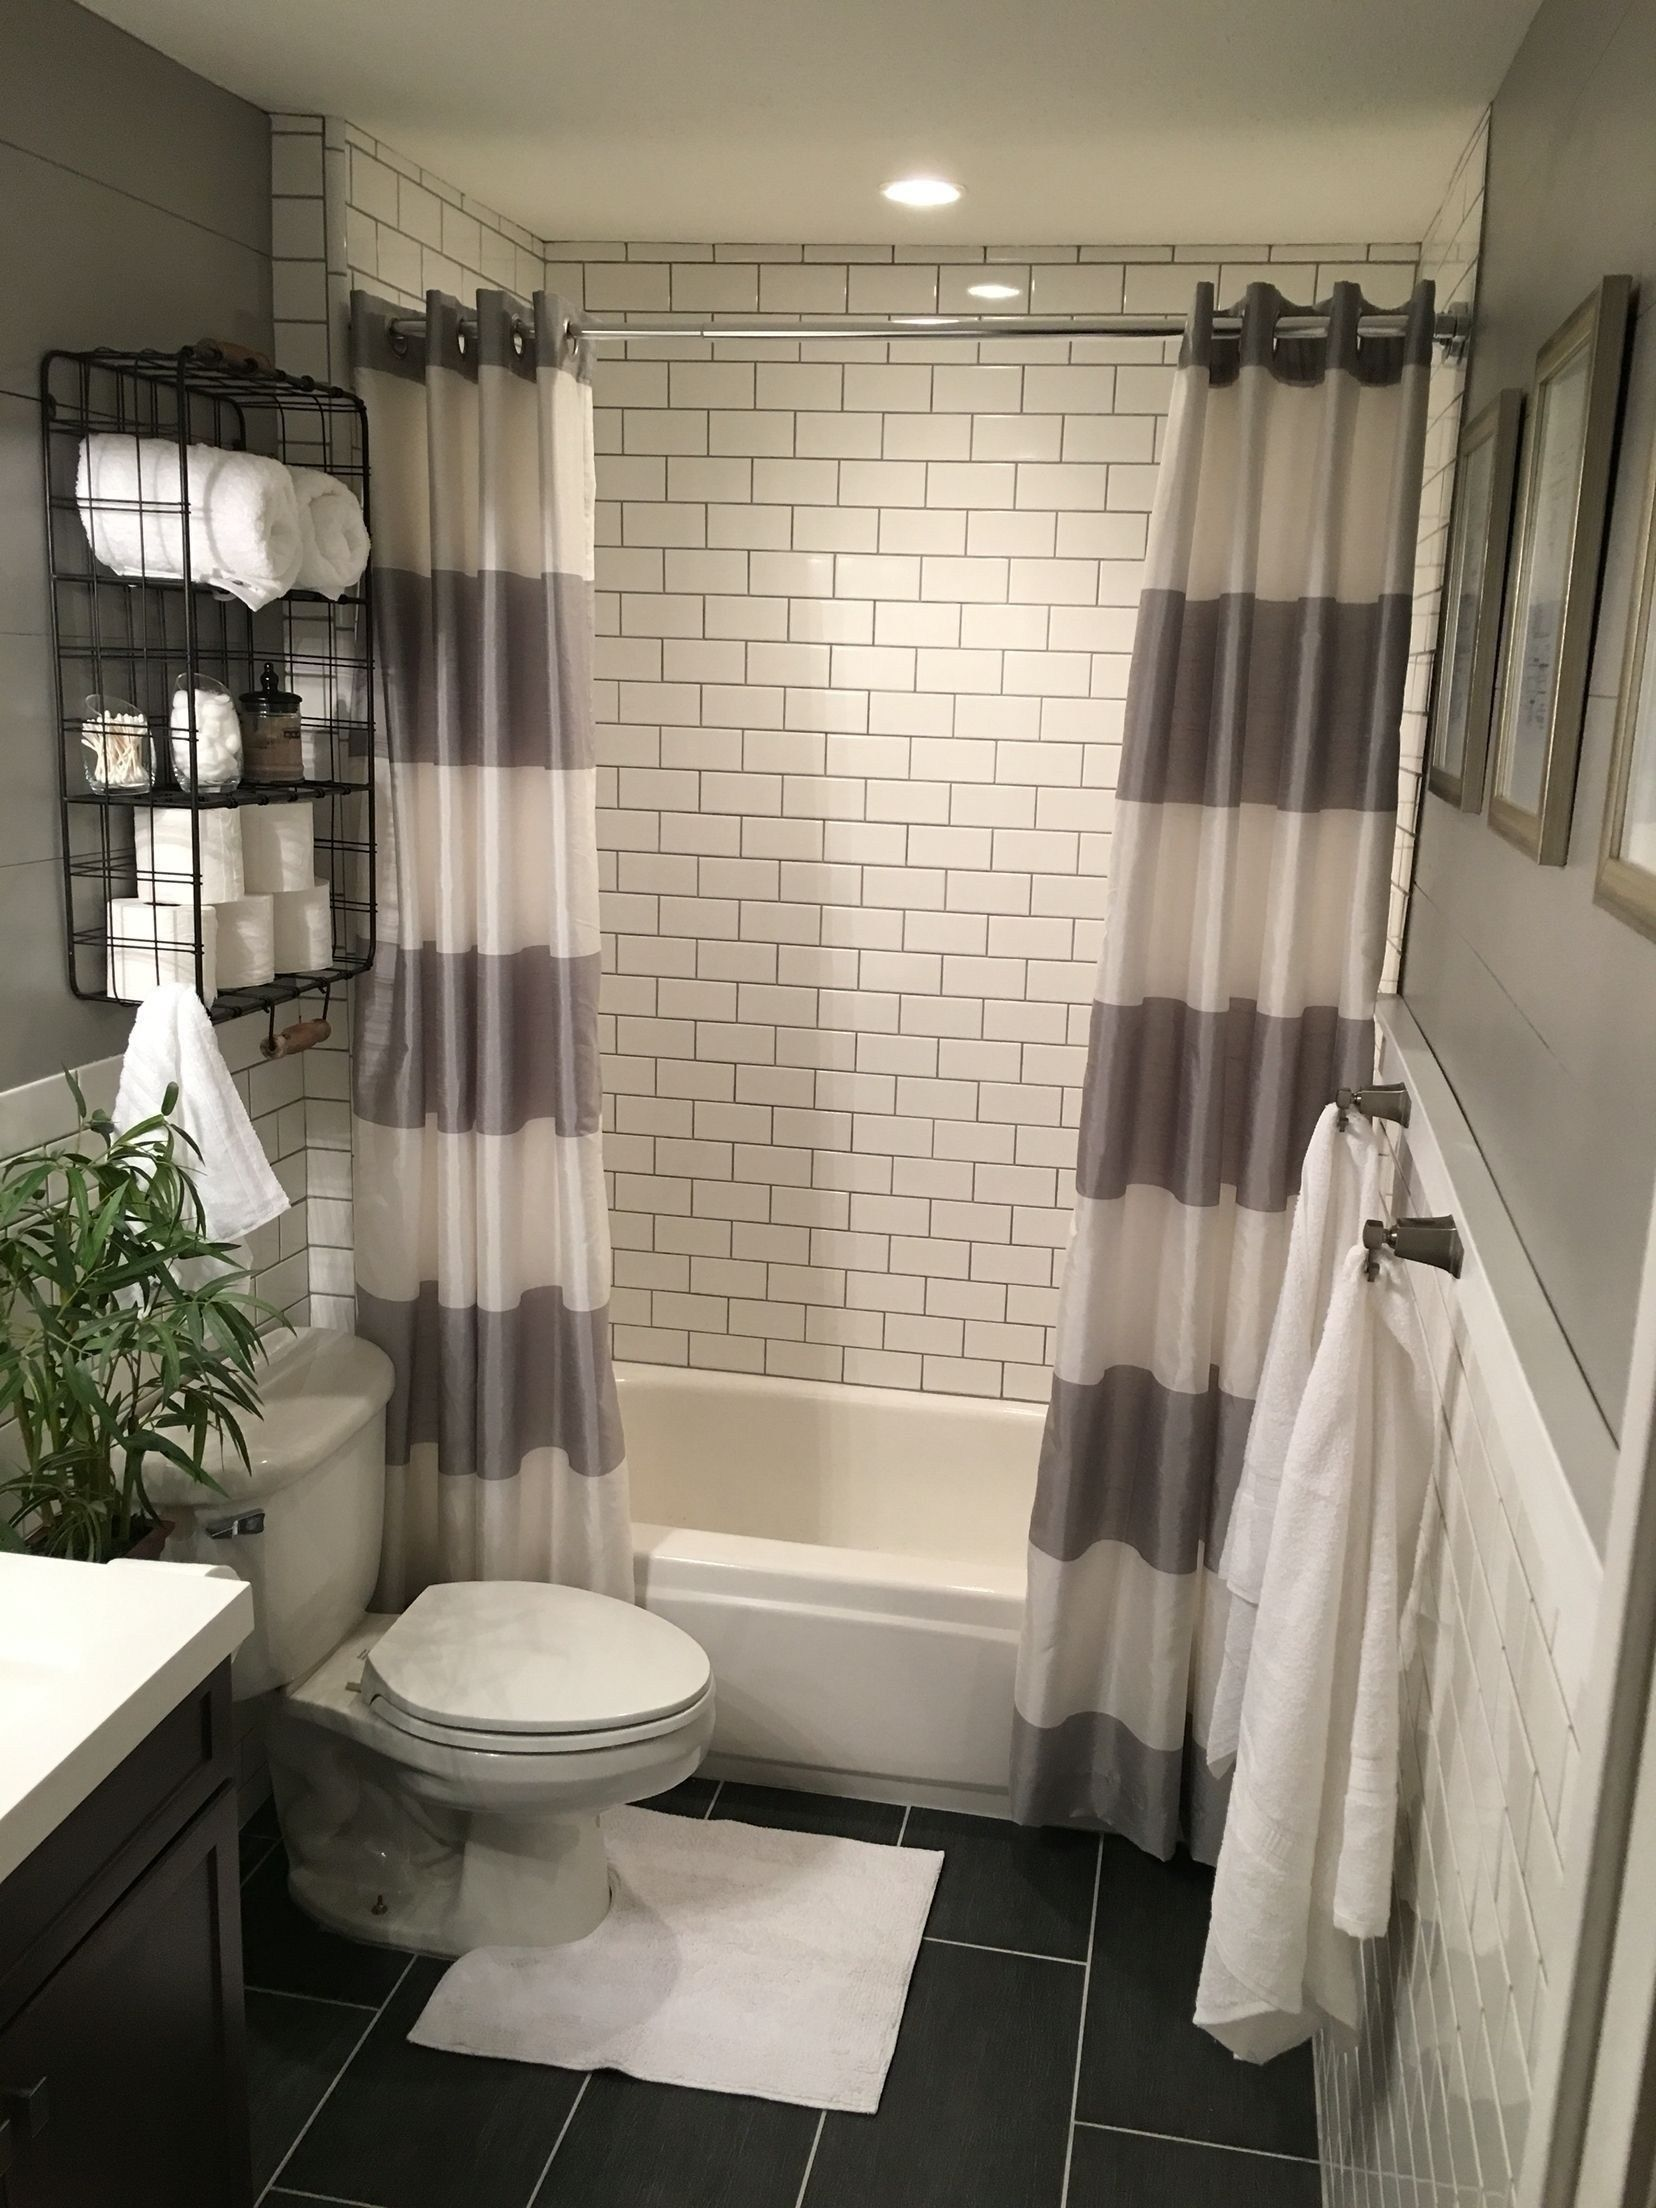 46 simple guest bathroom makeover ideas on a budget on amazing small bathroom designs and ideas id=34488